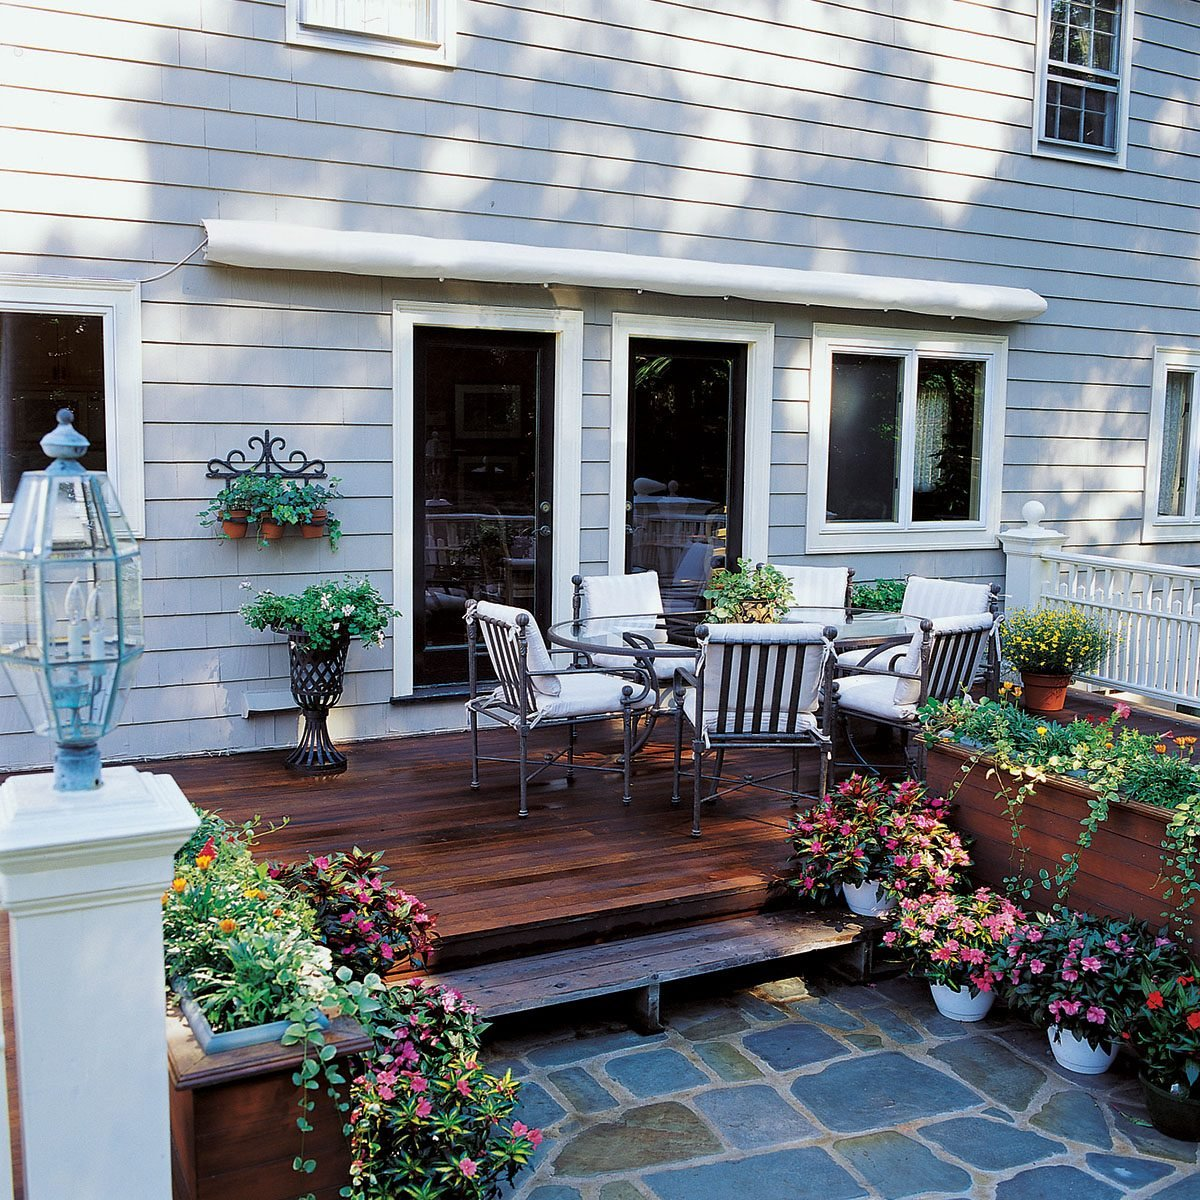 How To Shade Your Deck Or Patio With A Diy Awning Family Handyman